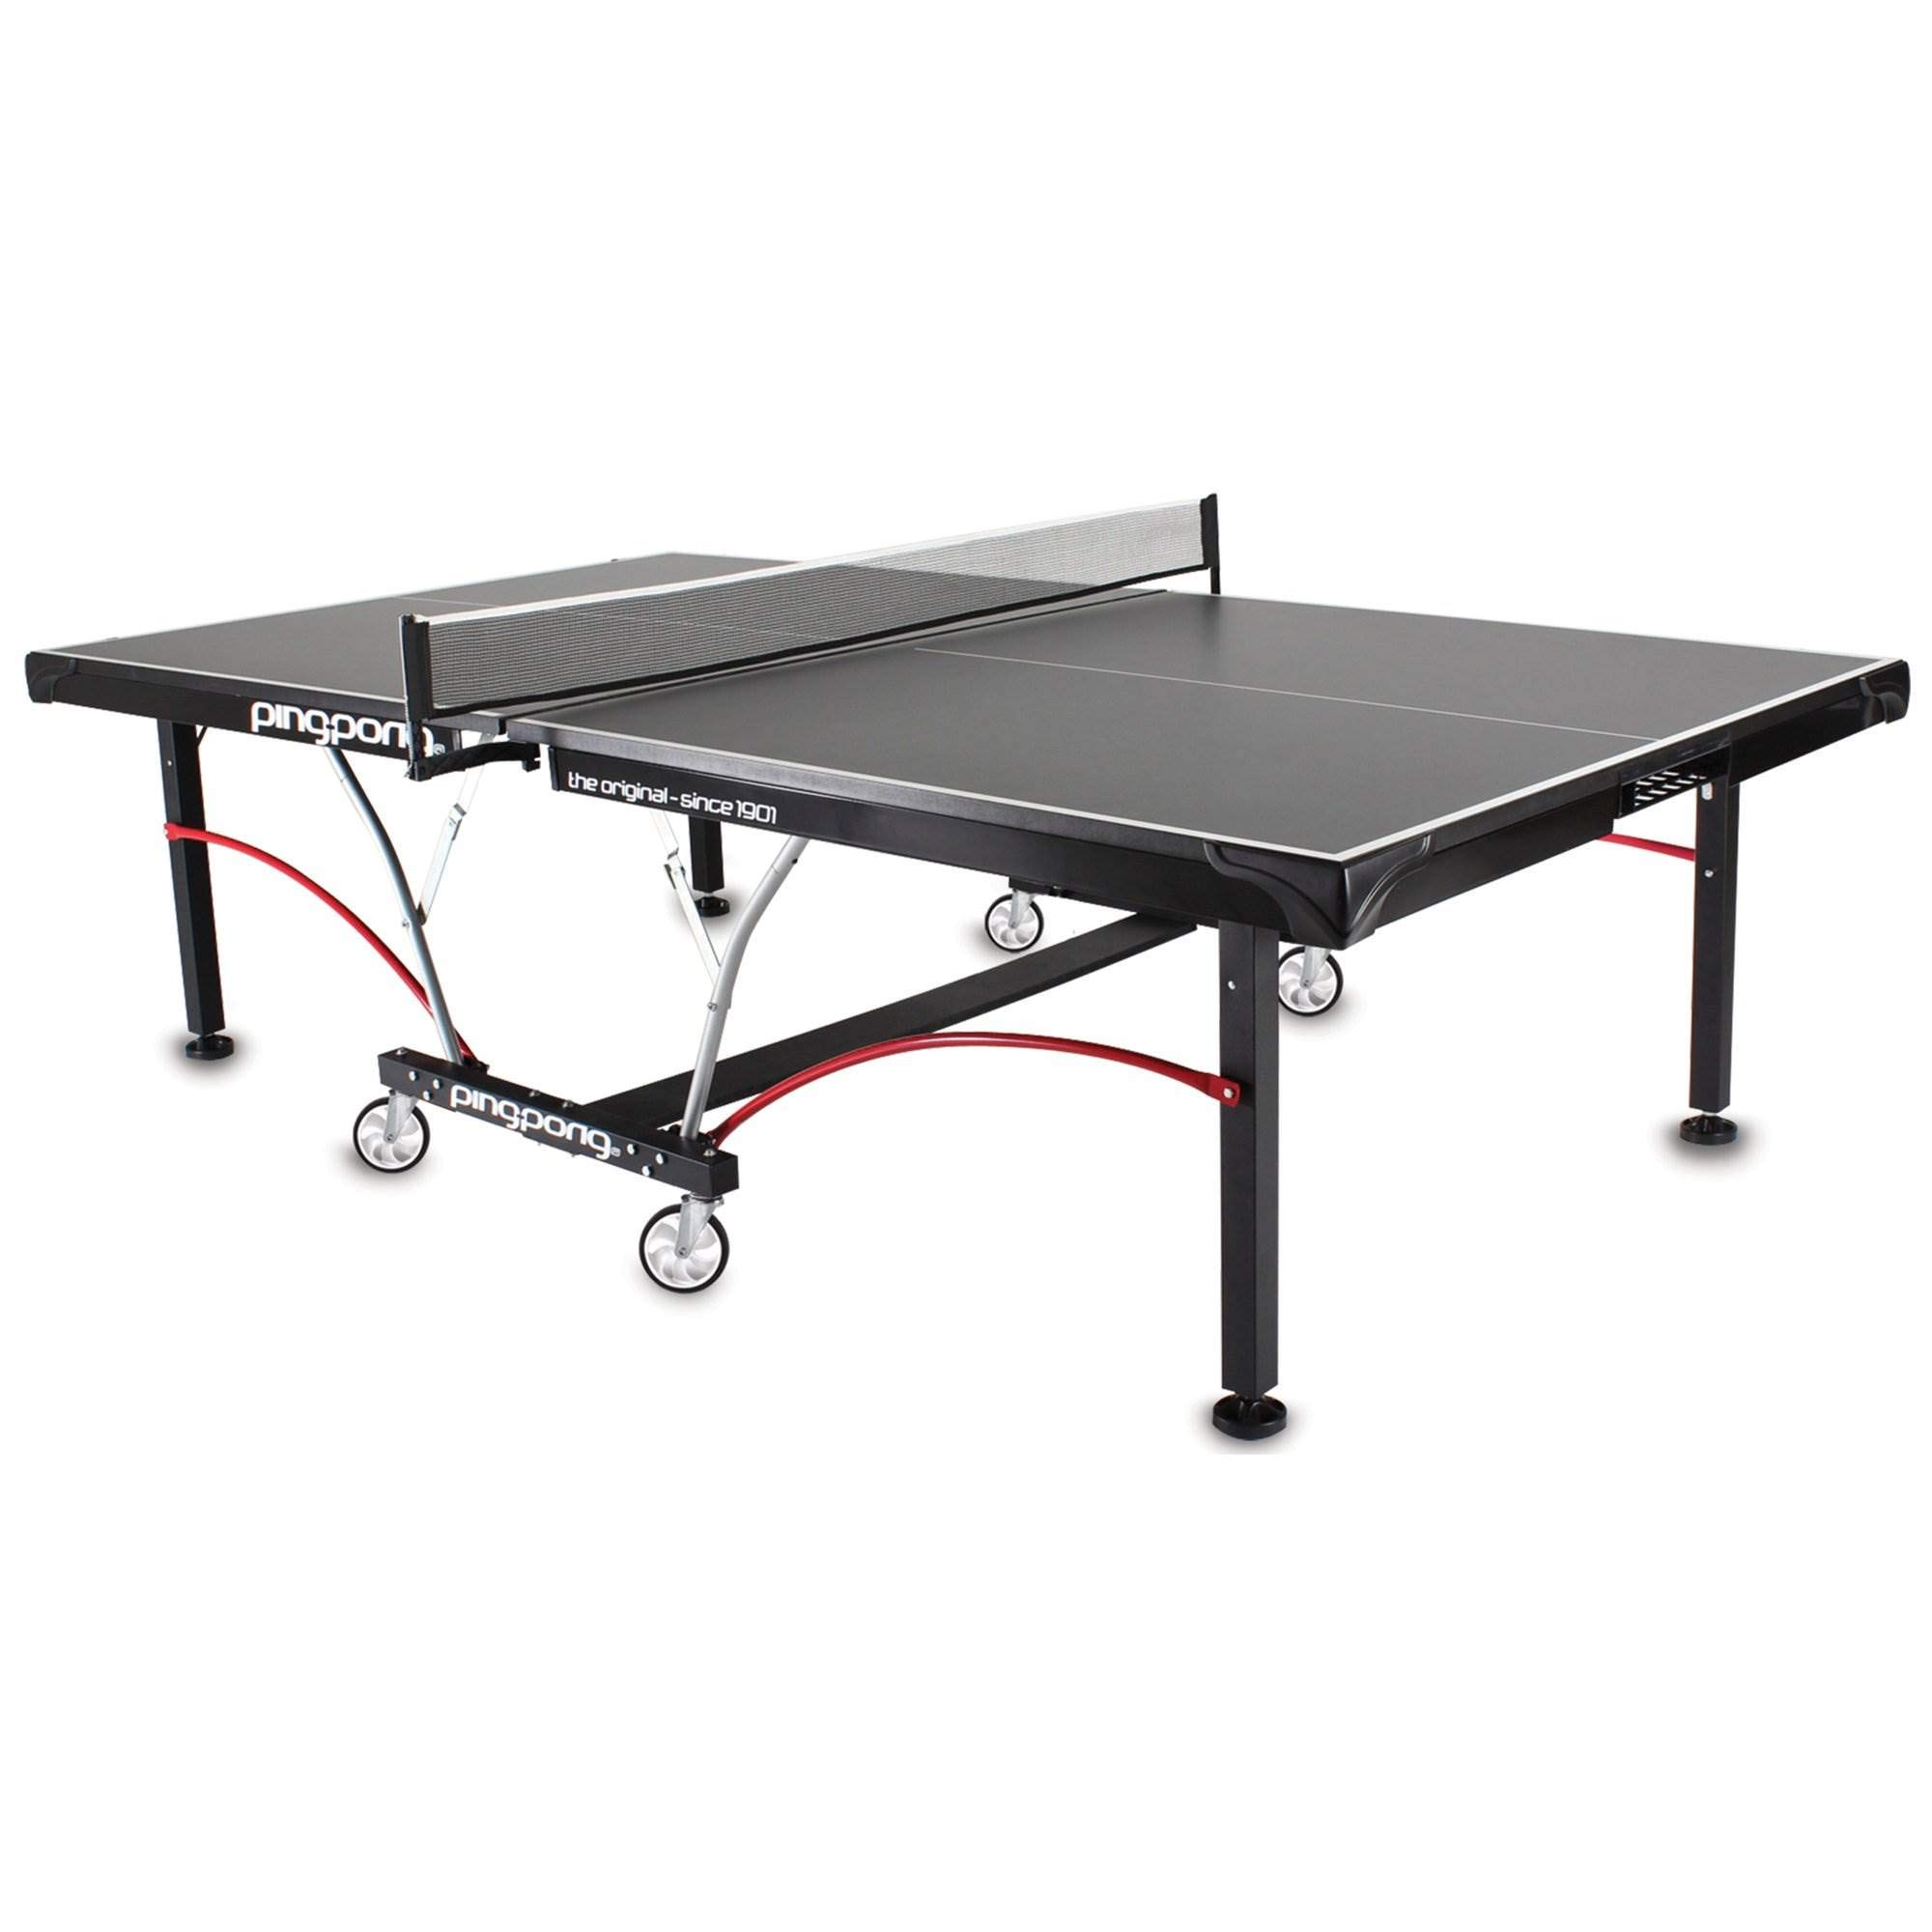 Ping-Pong Elite II Table Foldable Regulation Size Tennis Table w/ Caster Wheels by ping pong